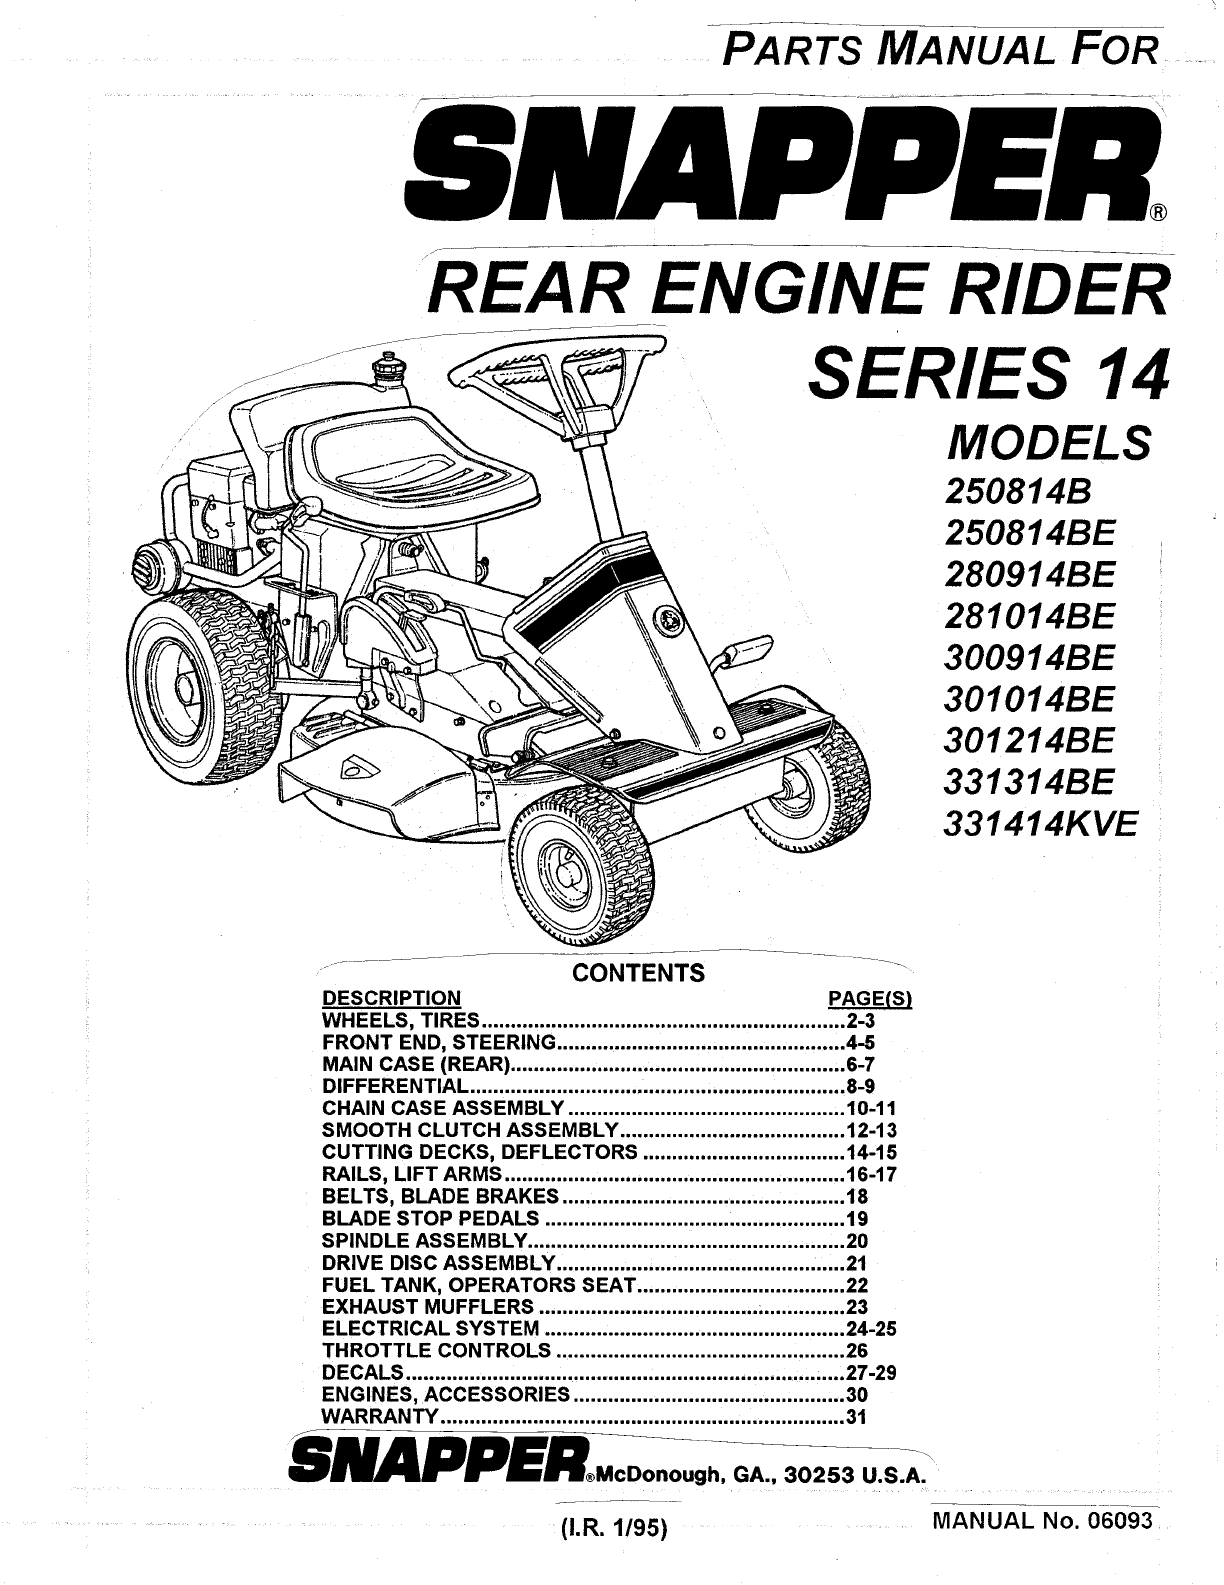 Dixon Ztr Deck Belt Diagram also Wiring Diagram Additionally Riding Lawn Mower Likewise likewise 250814be also 301213be 1 in addition Alfa Romeo Spider Veloce Ignition Wiring Diagrams. on snapper repair manuals online